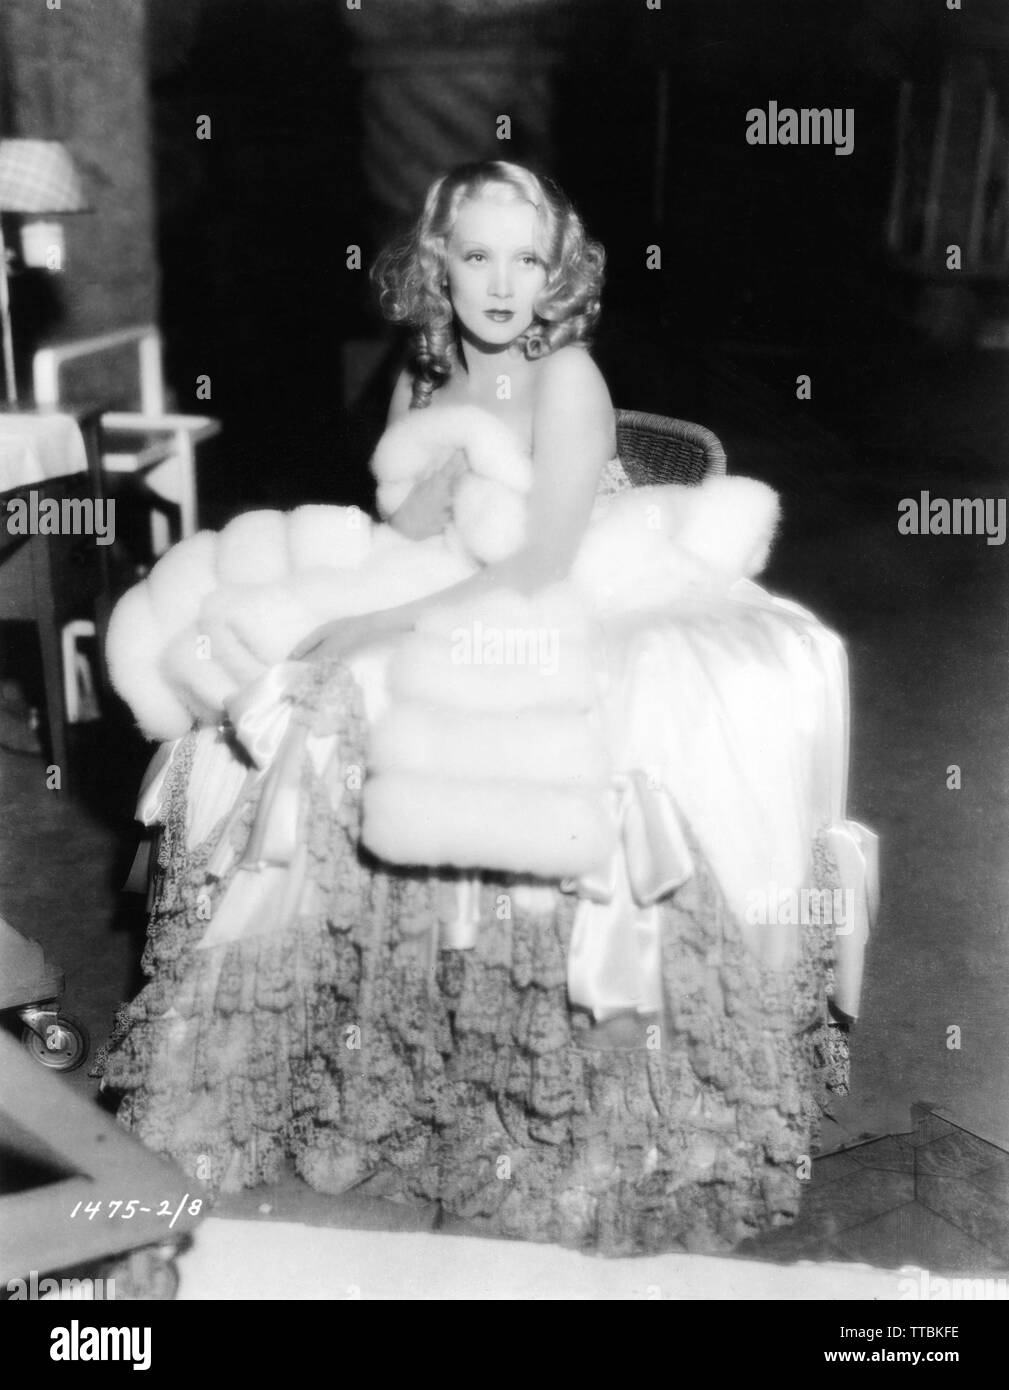 MARLENE DIETRICH as Catherine the Great of Russia THE SCARLET EMPRESS 1934 on set candid filming director Josef von STERNBERG Paramount Pictures - Stock Image